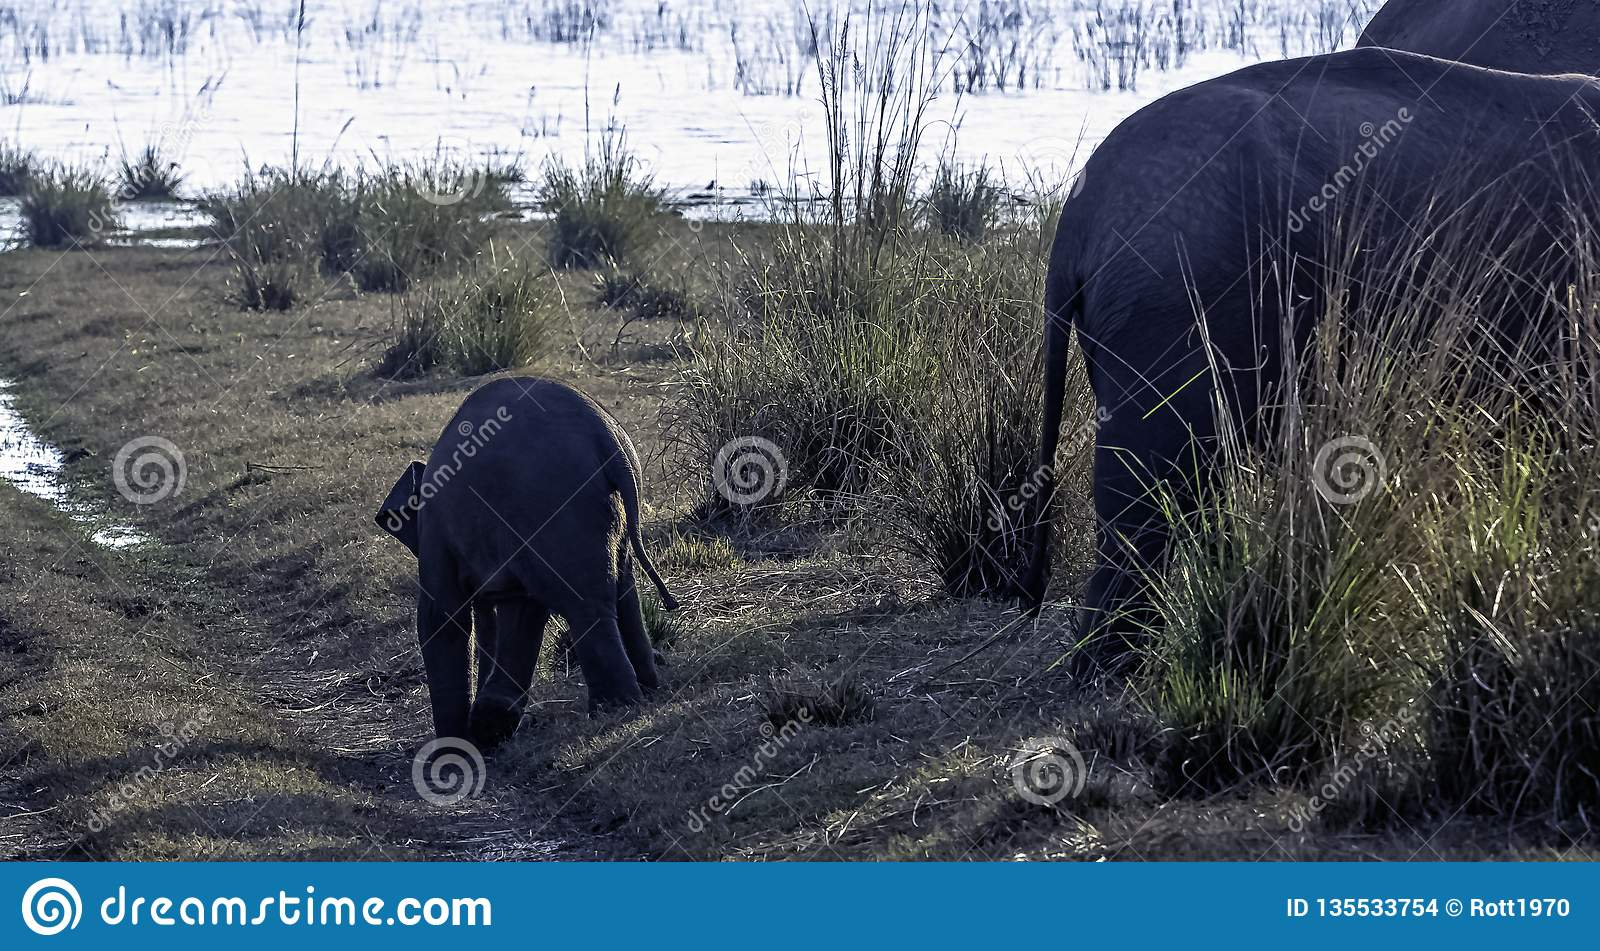 Baby Indian elephant with Ramganga Reservoir in background - Jim Corbett National Park, India